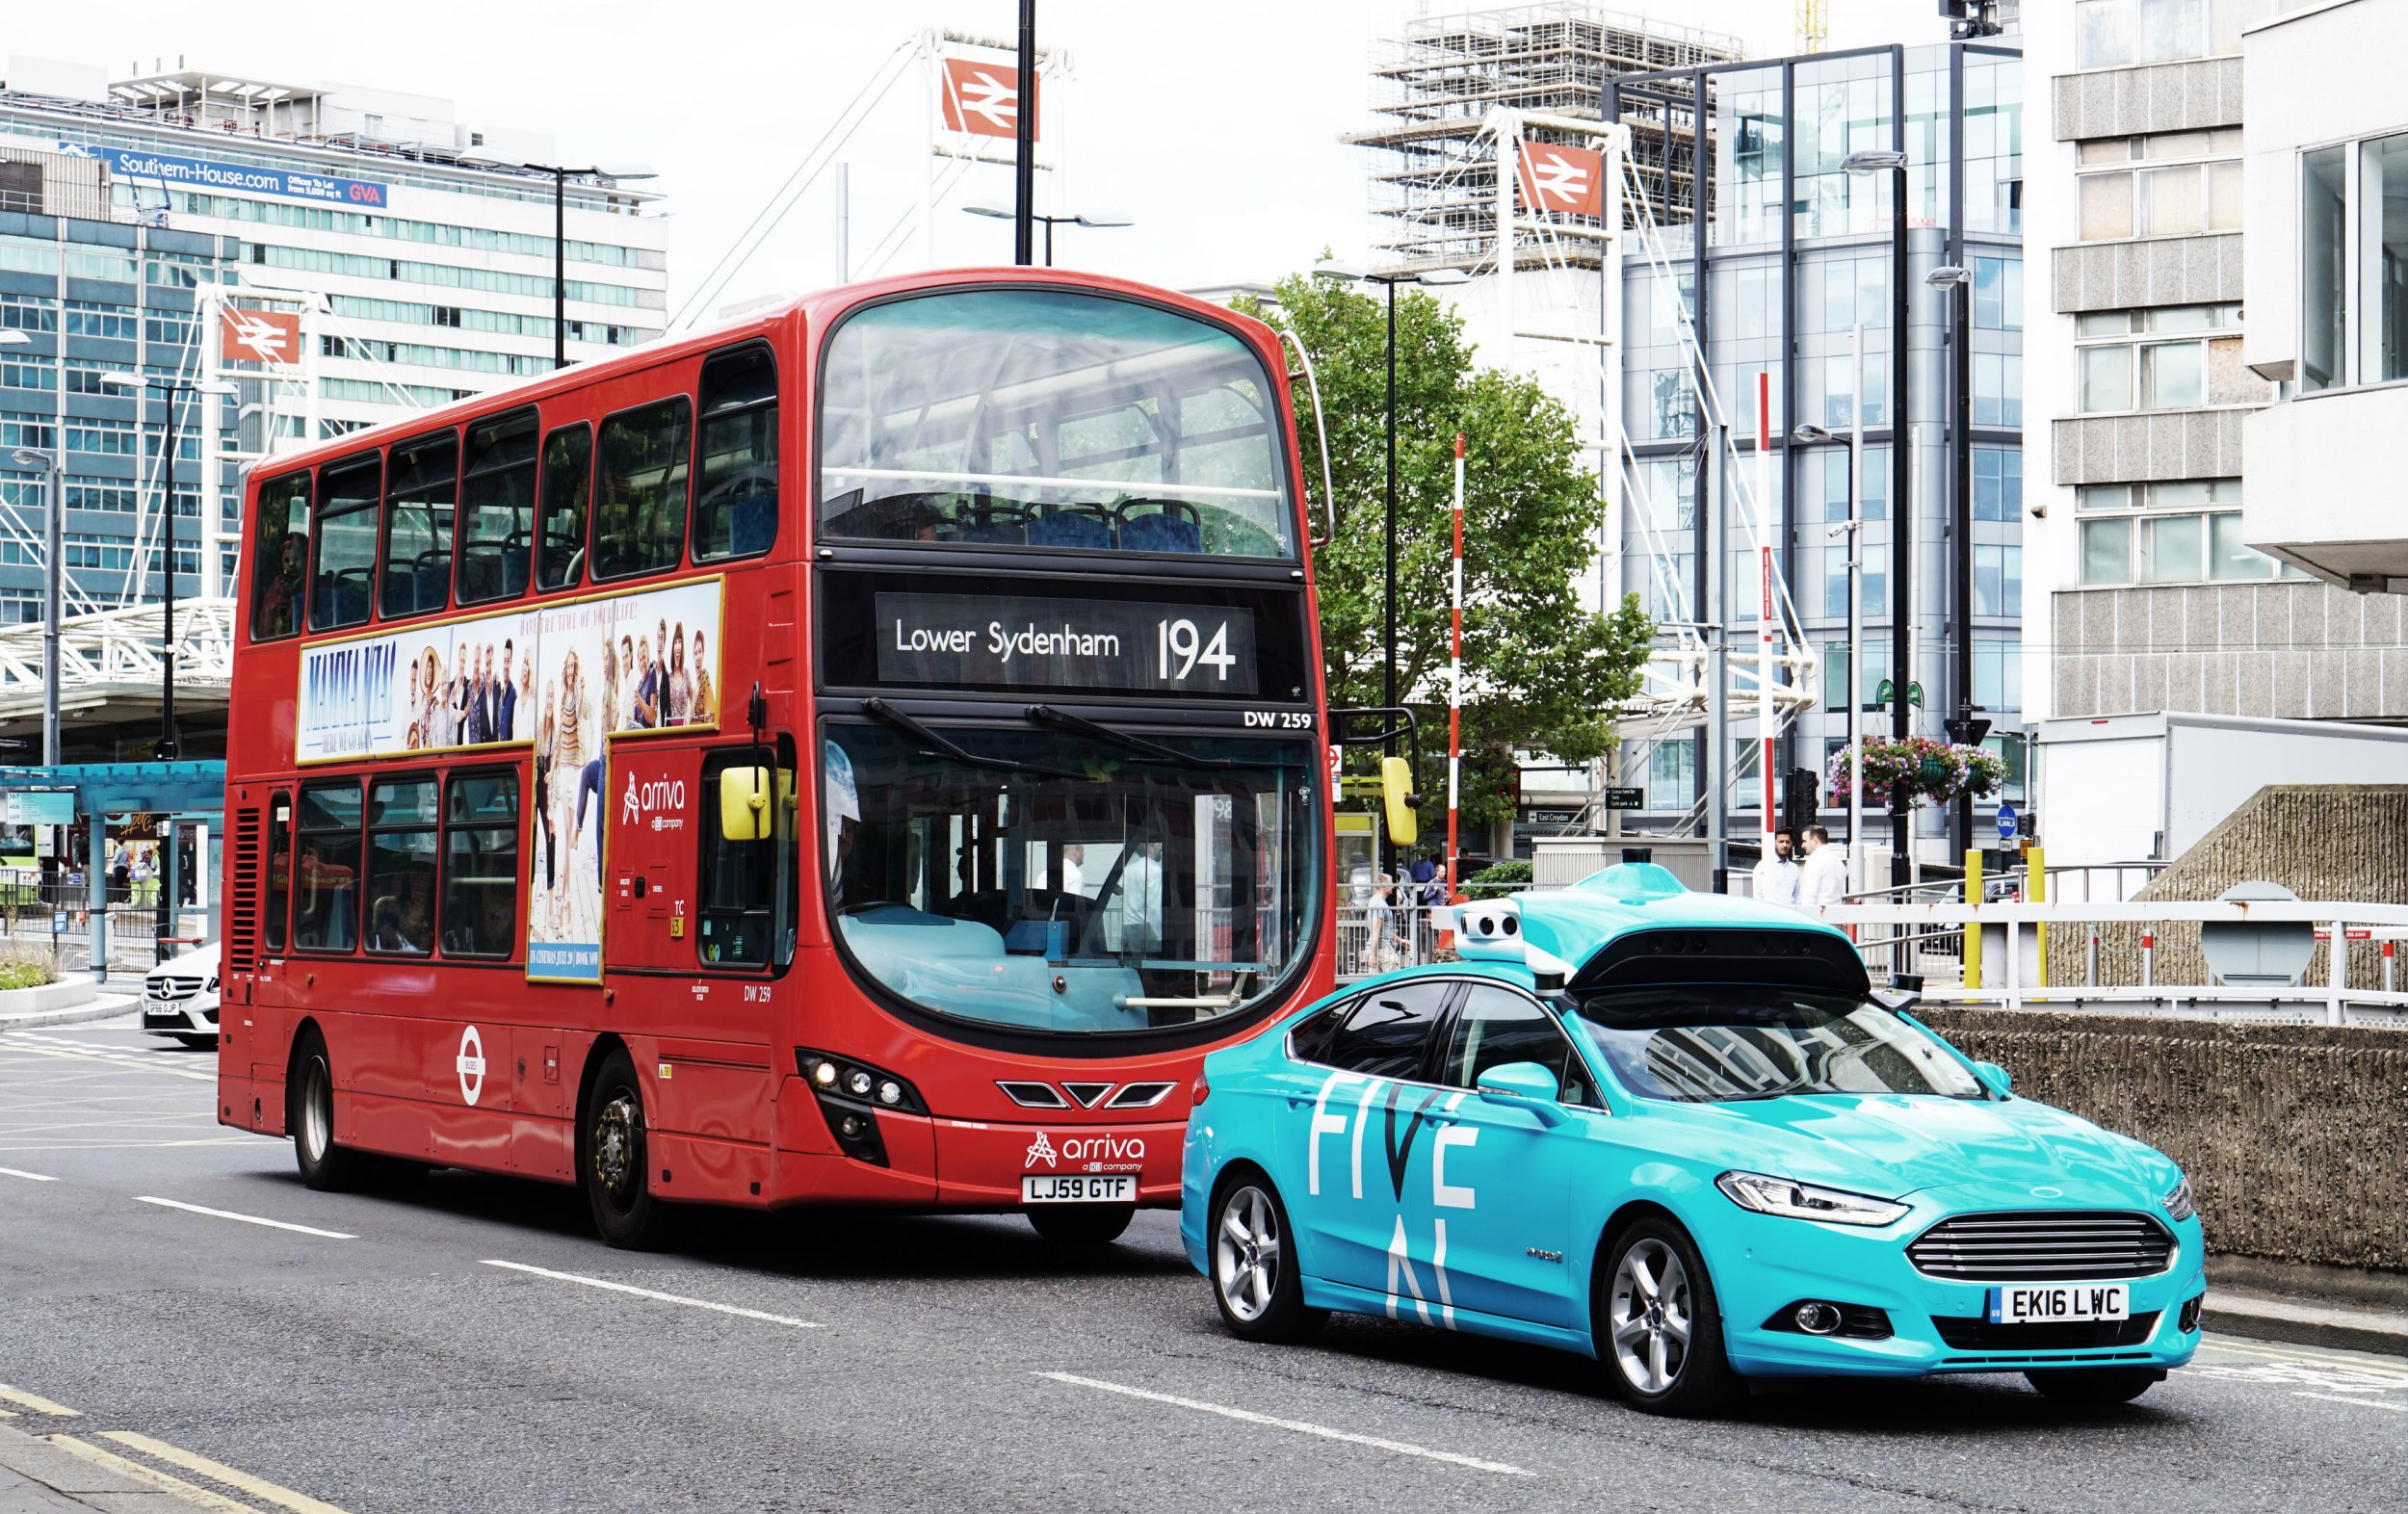 Self-driving cars are now being tested on London's streets